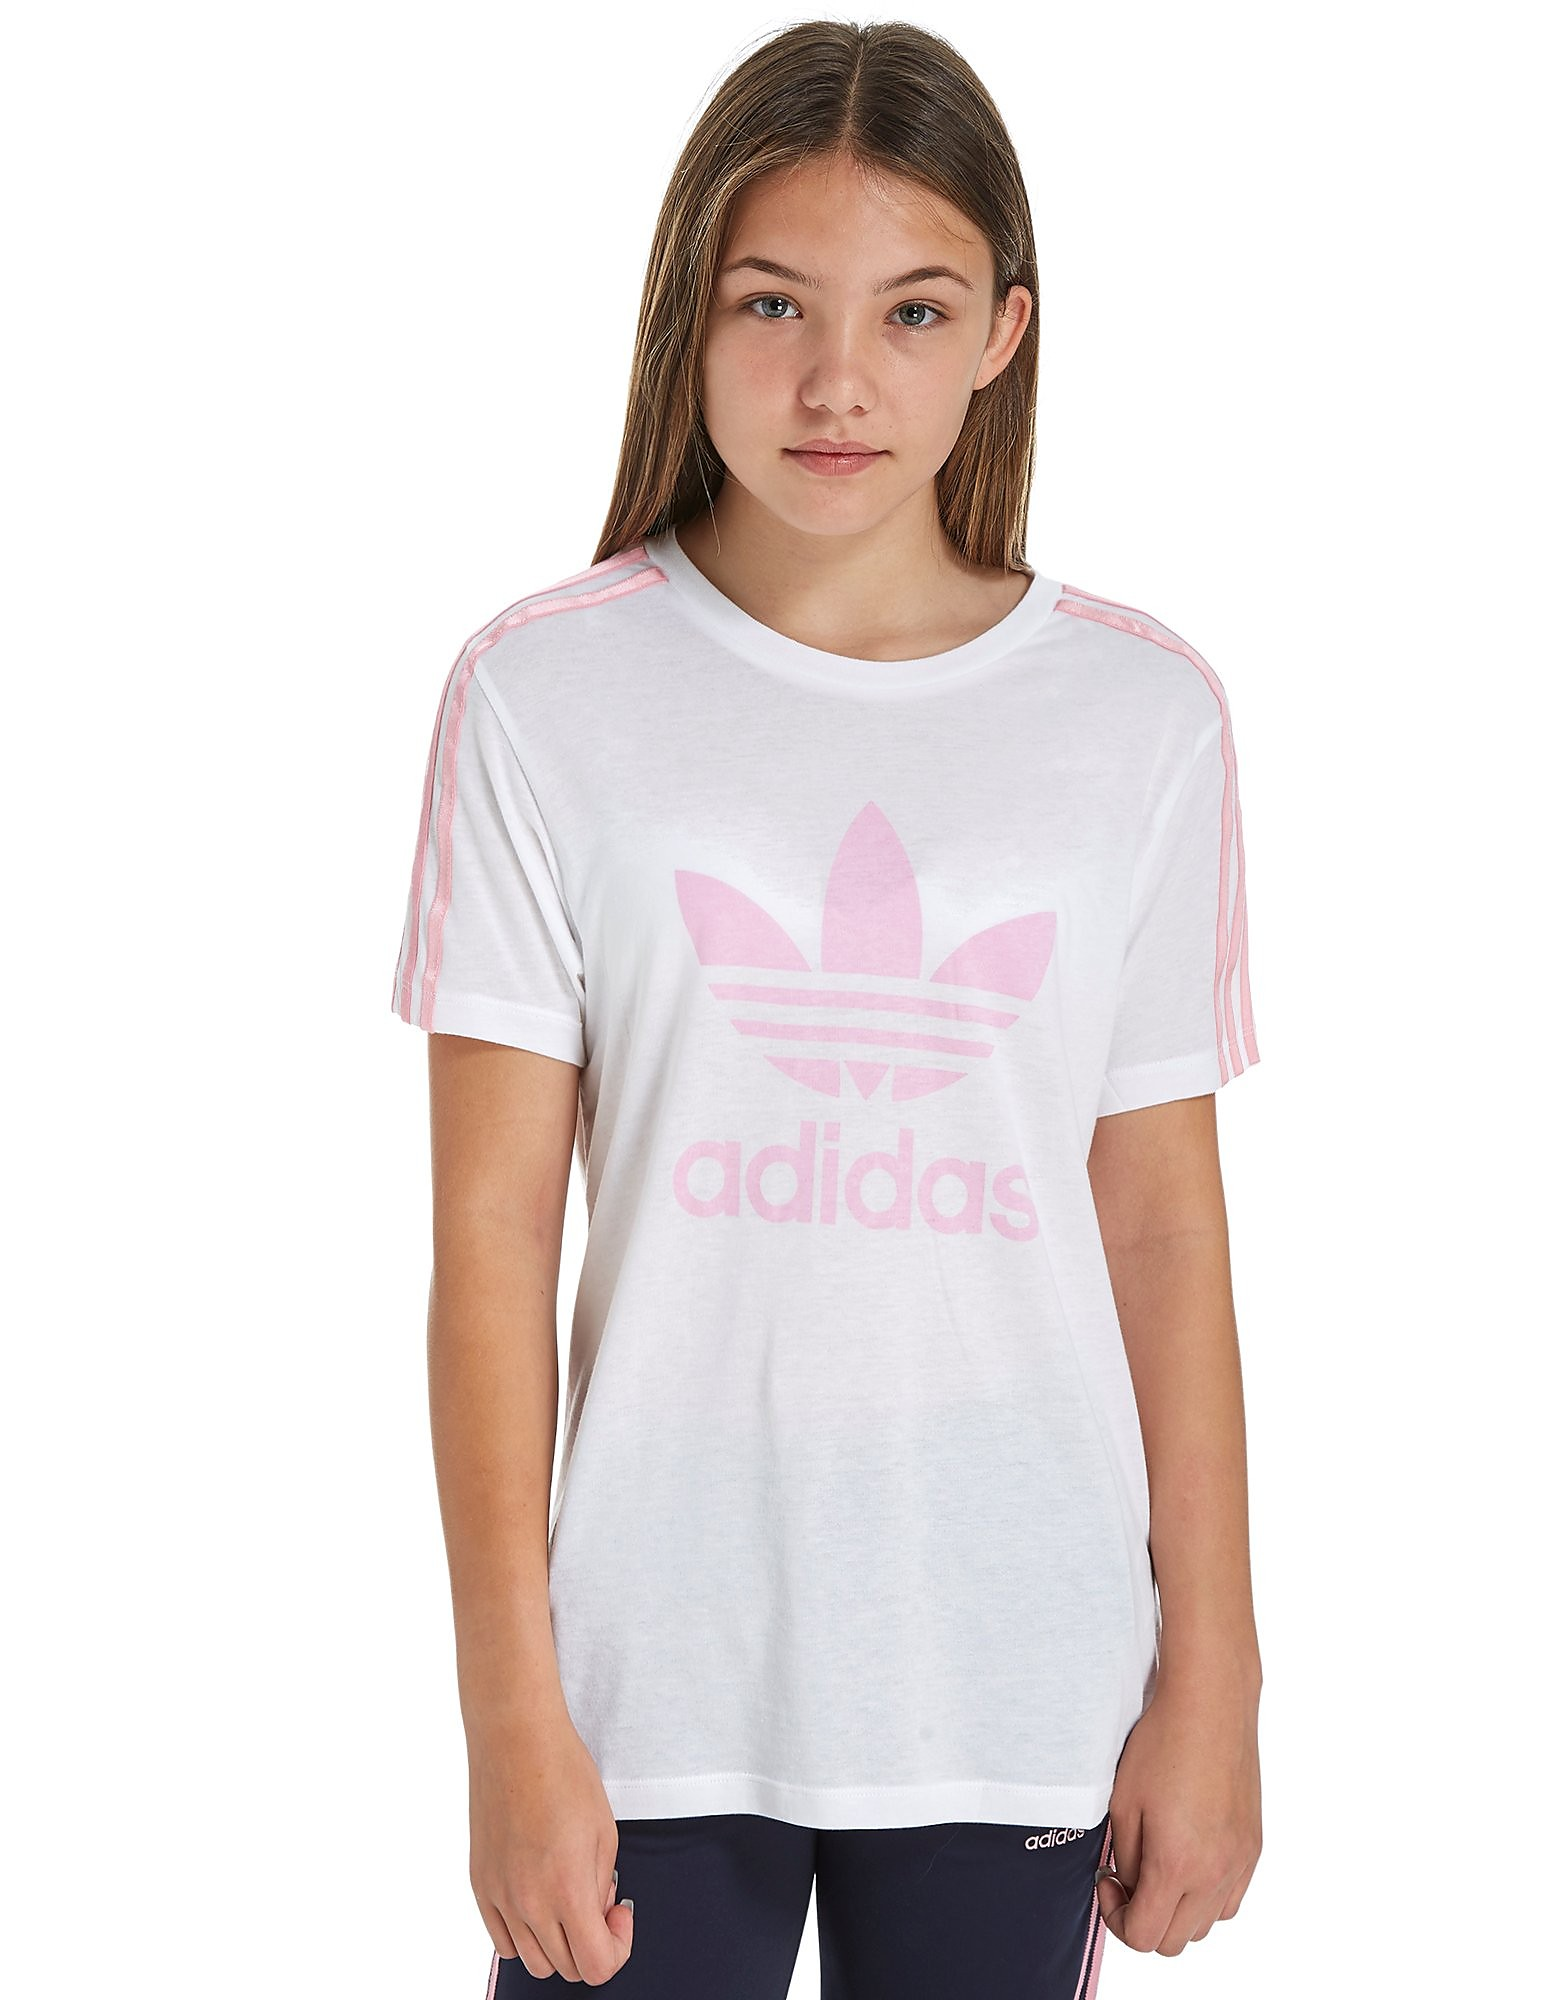 adidas Originals 3-Stripes Boyfriend T-Shirt Juniors'